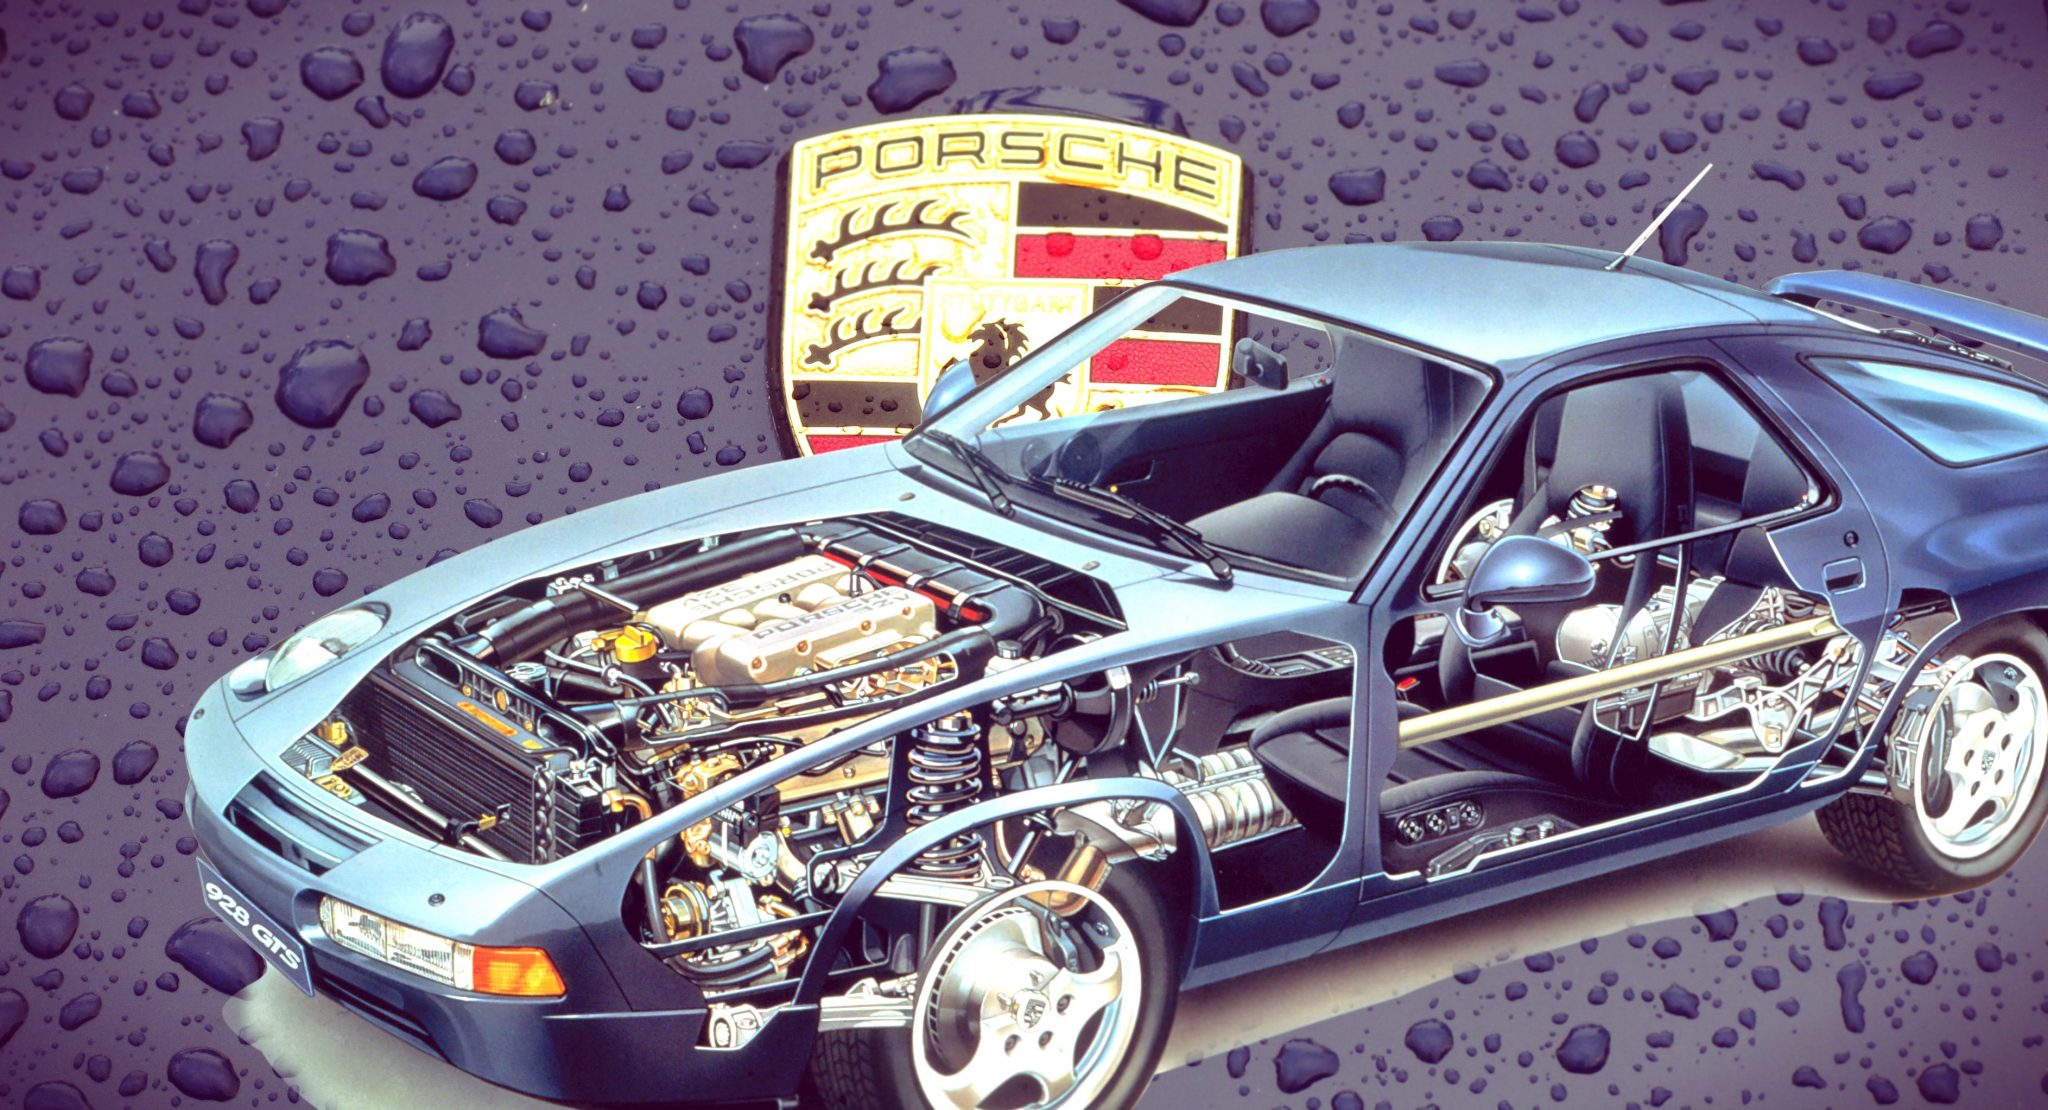 Technical Illustration of 1992 Porsche 928 GTS Coupe